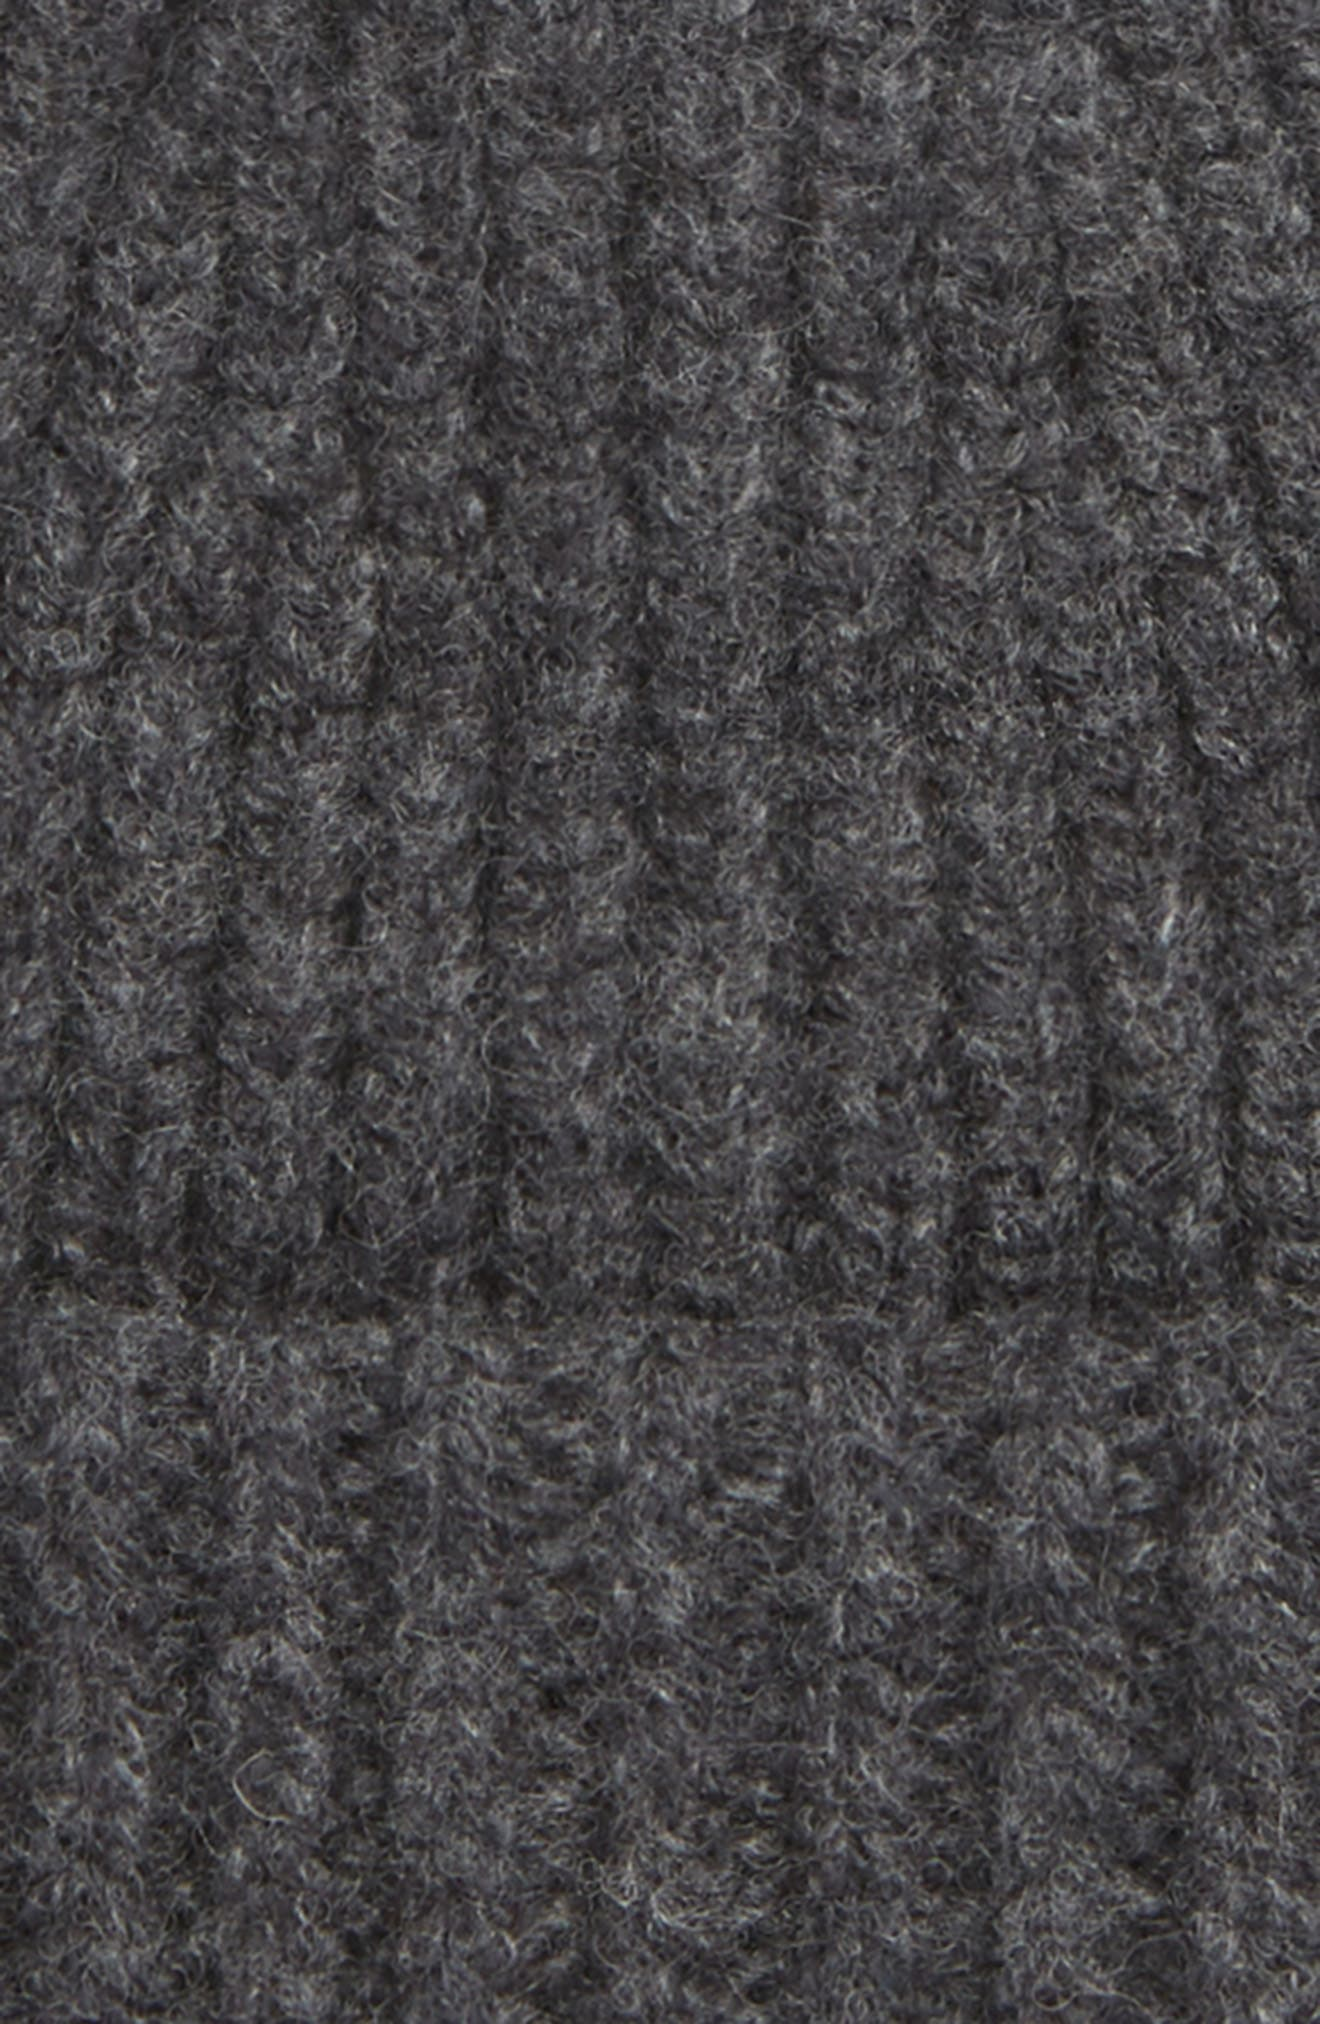 ACNE STUDIOS,                             Pansy Rib Knit Beanie,                             Alternate thumbnail 2, color,                             CHARCOAL MELANGE